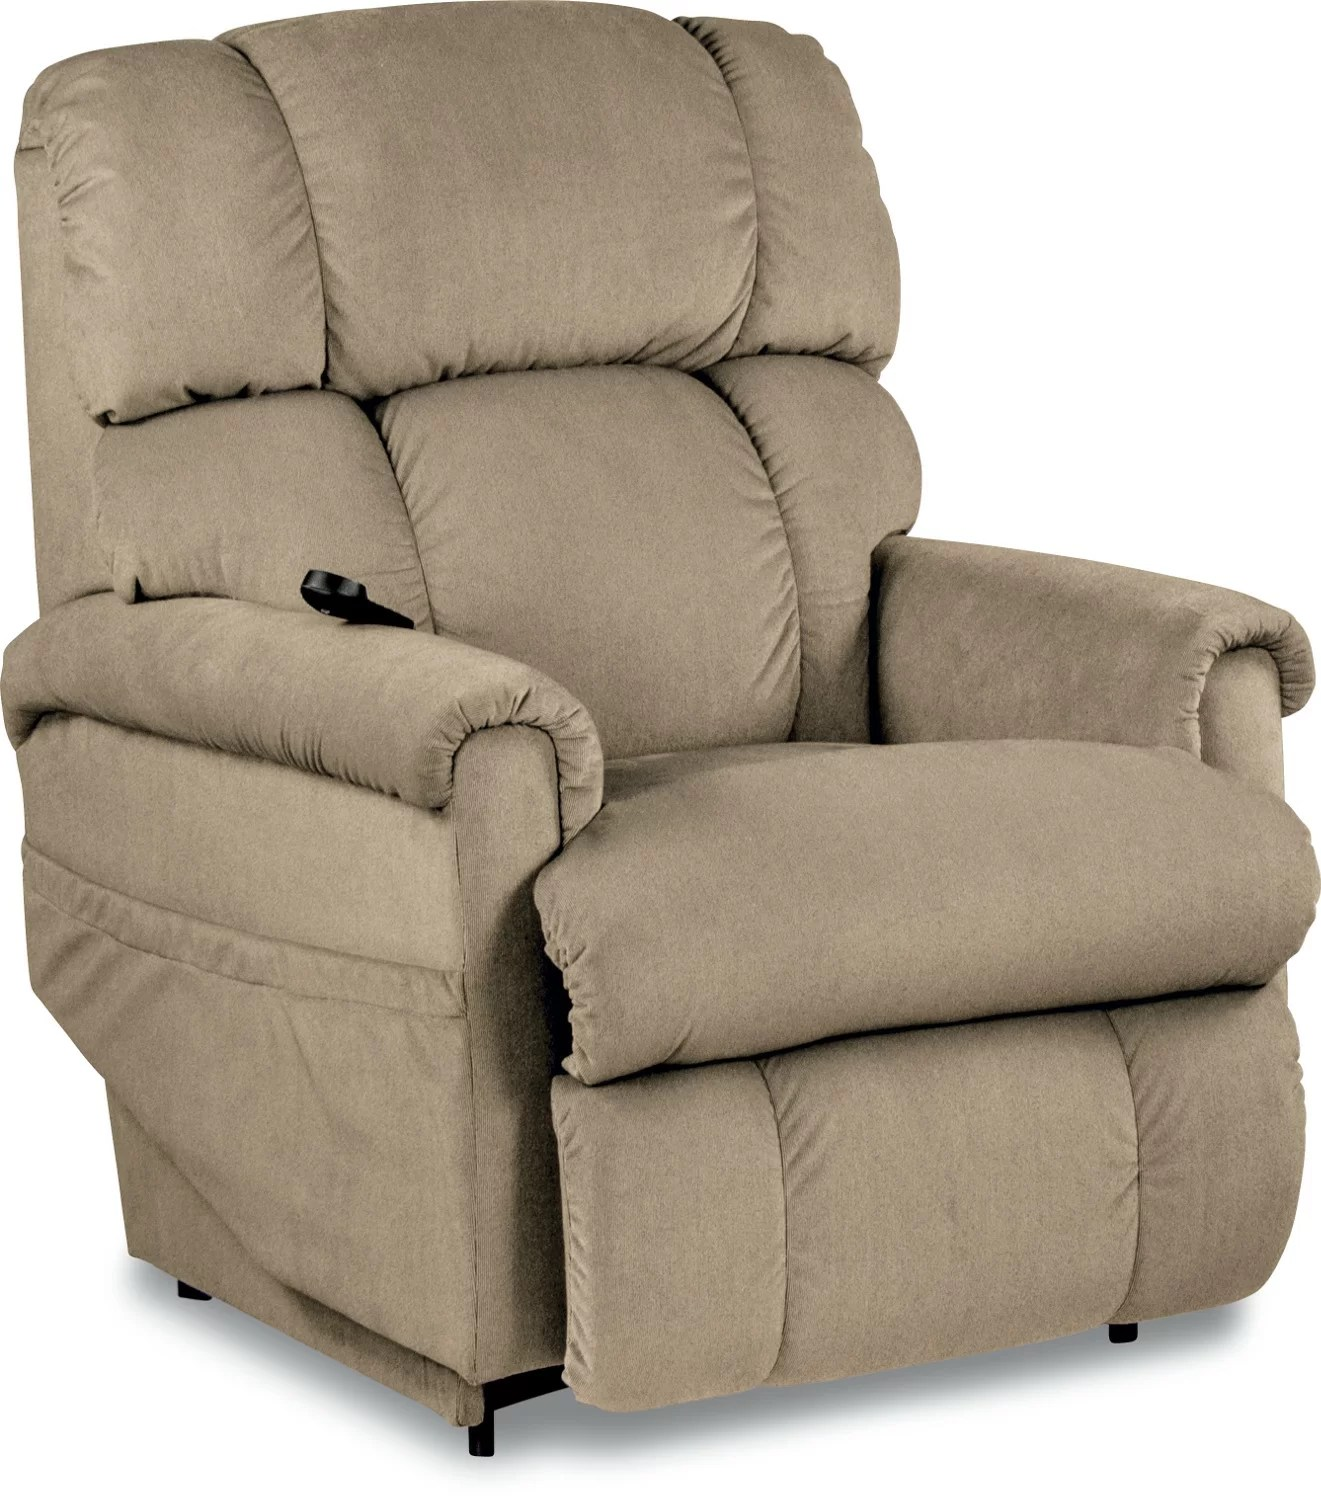 Lift Armchair Pinnacle Power Lift Assist Recliner